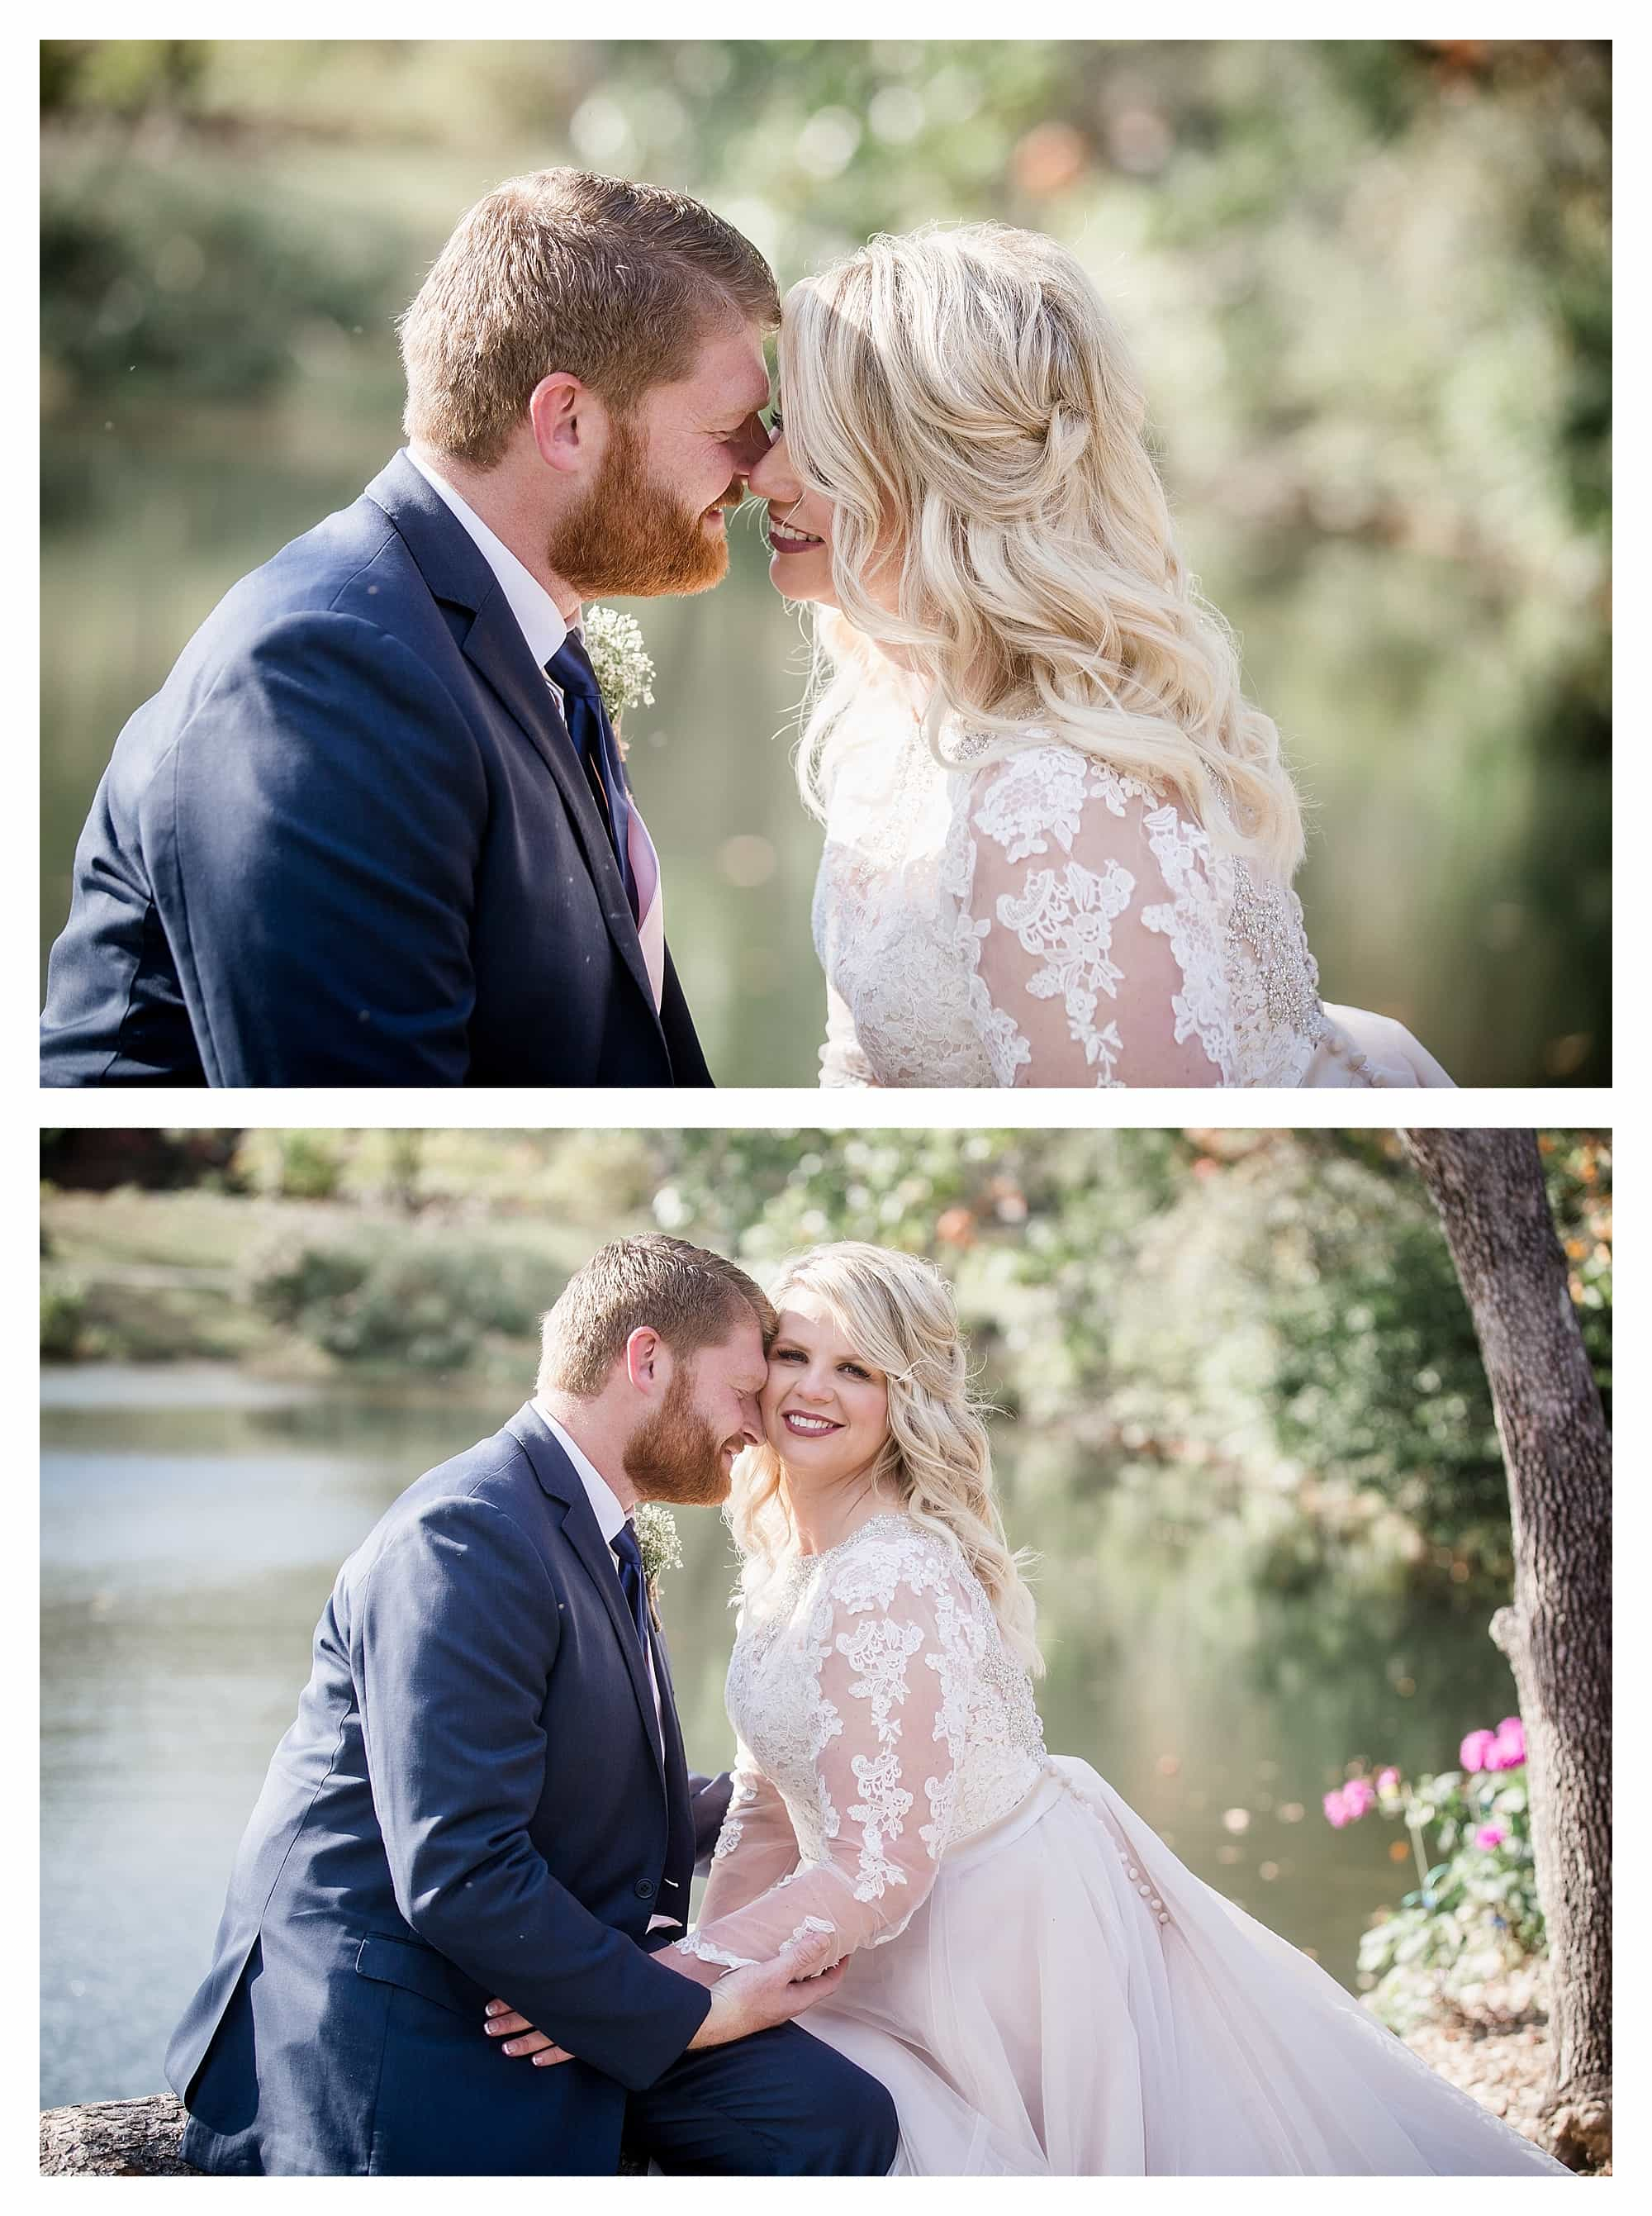 Bride and groom romantic pictures